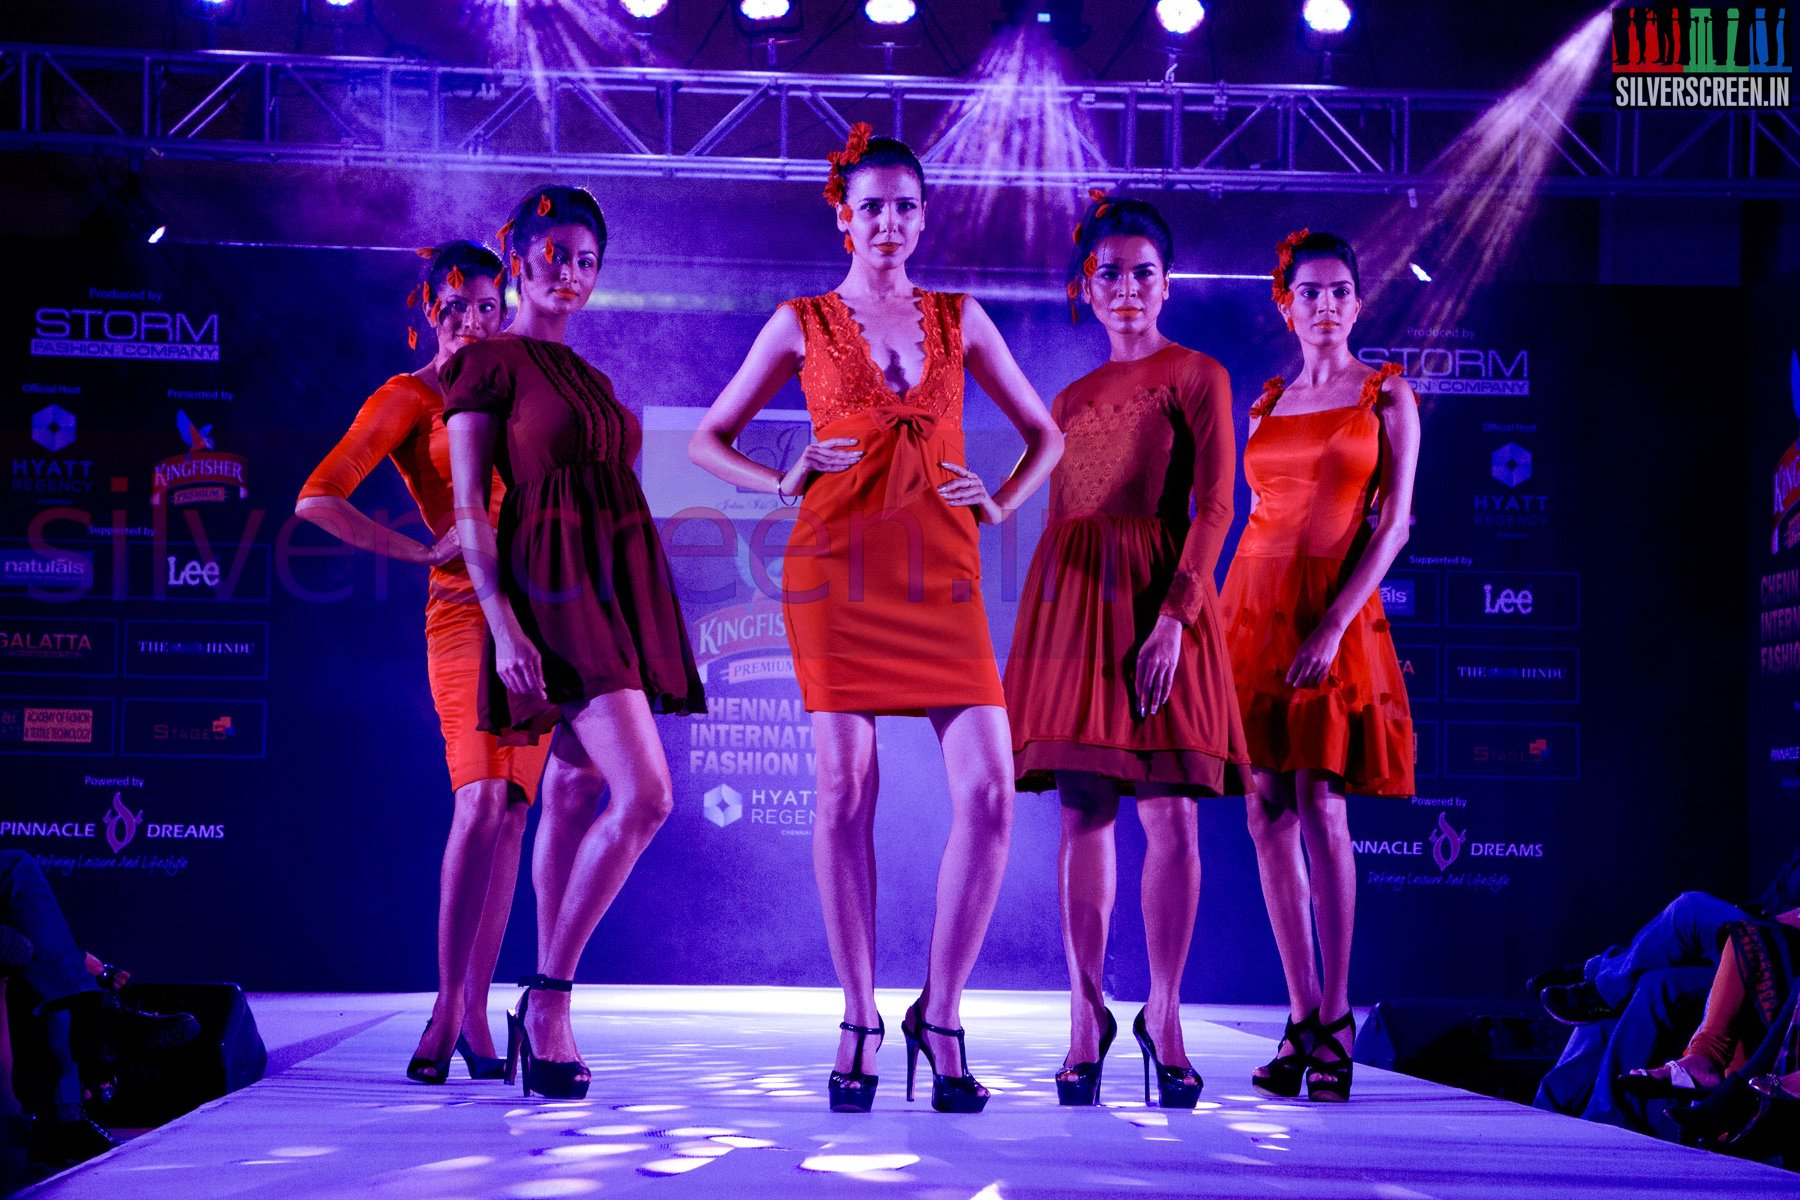 Cifw 2014 Day Two Hq Pics Silverscreen In